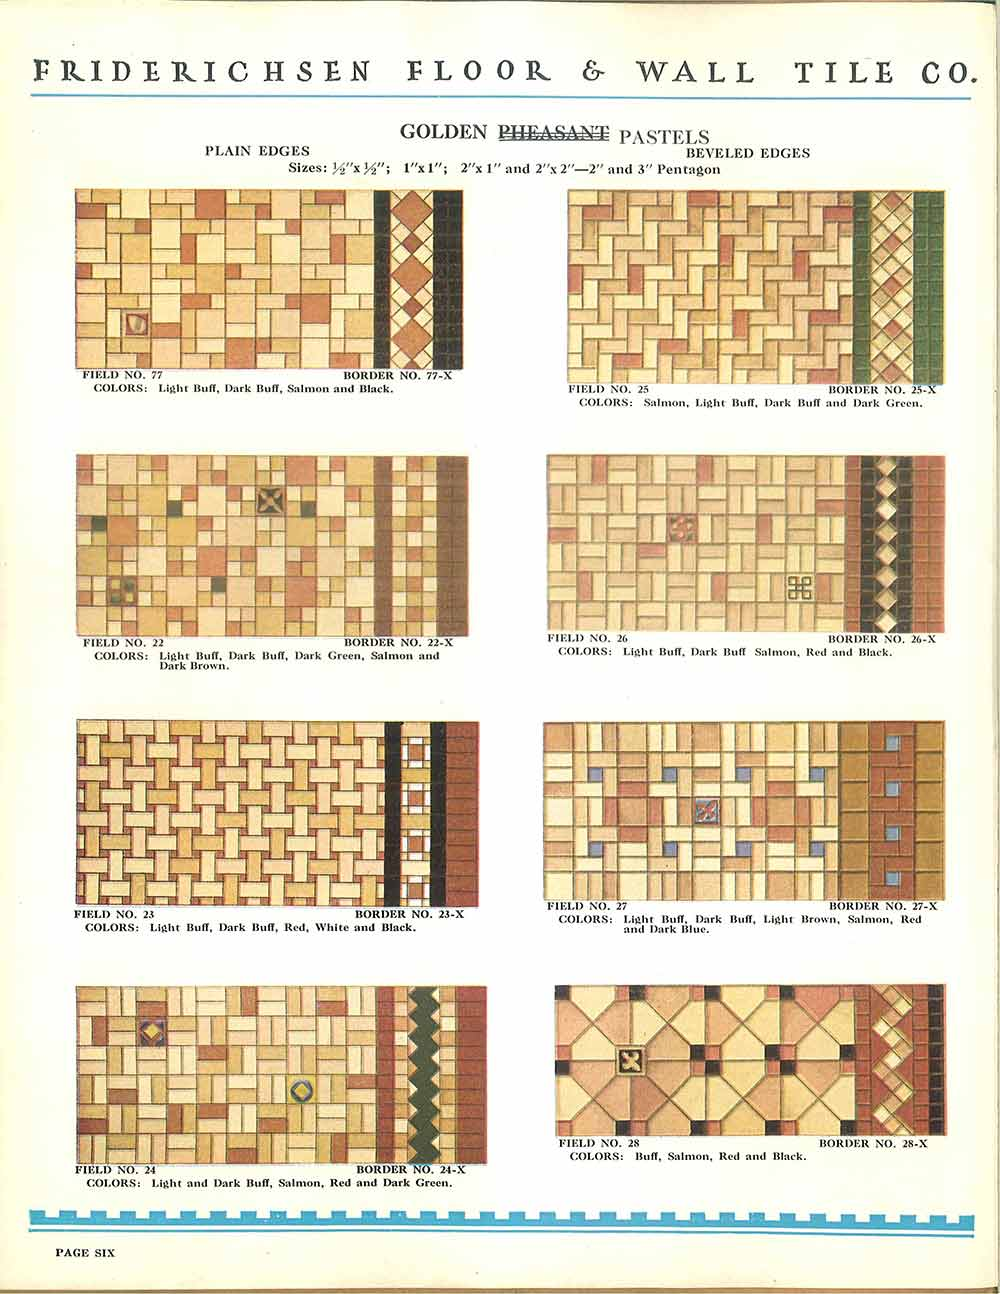 112 patterns of mosaic floor tile in amazing colors vintage ceramic floor patterns for ceramic tile 1930s dailygadgetfo Gallery